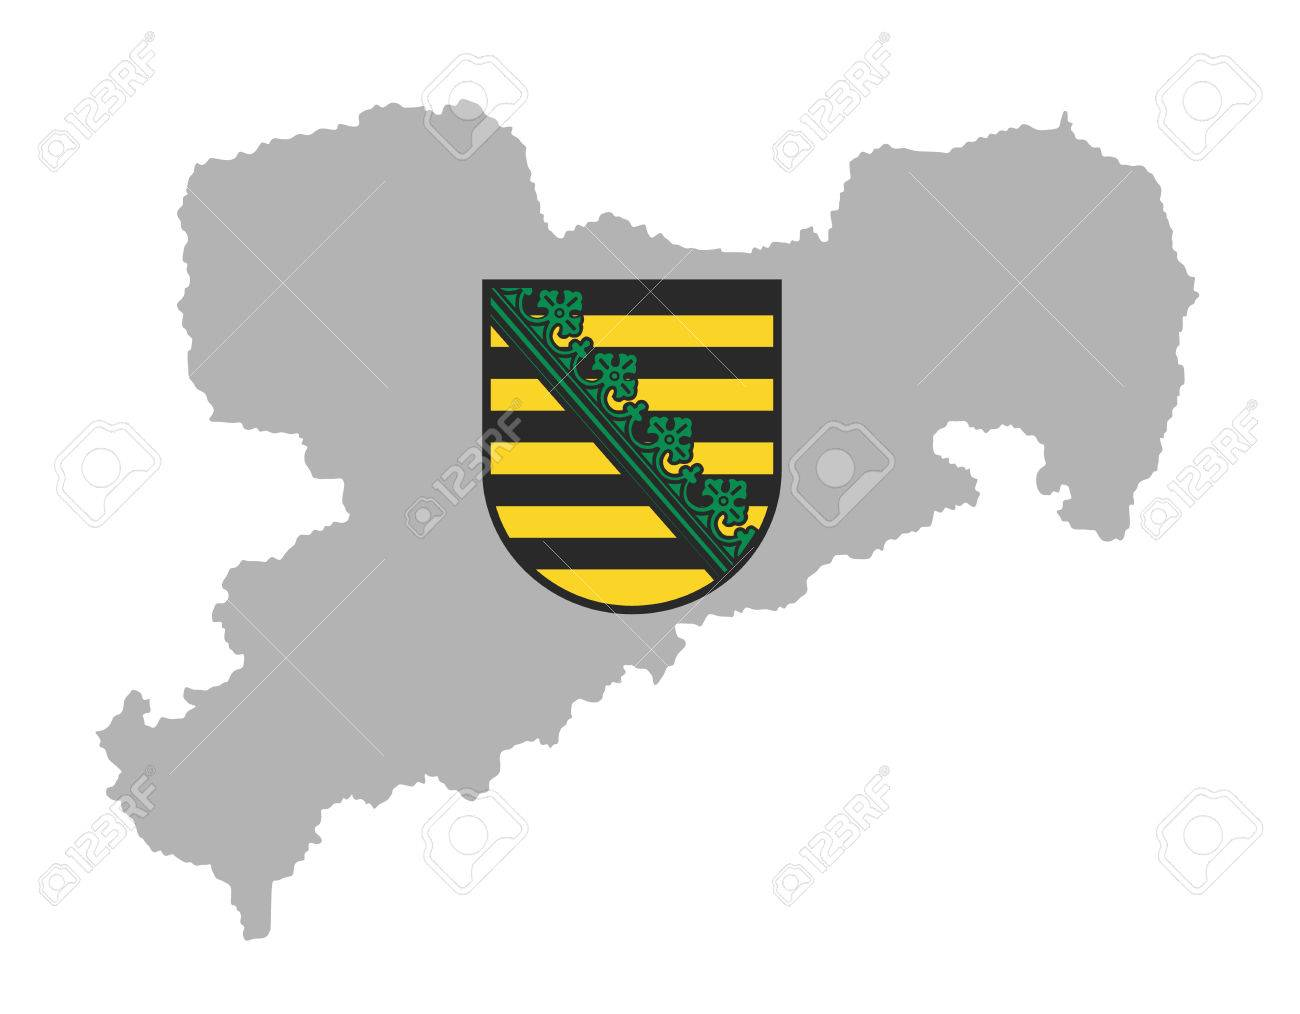 Coat of arms of Saxony, Original and simple flag isolated vector in official colors and Proportion Correctly. Sachsen map, Saxony map, high detailed silhouette illustration. Province in Germany. - 61575310